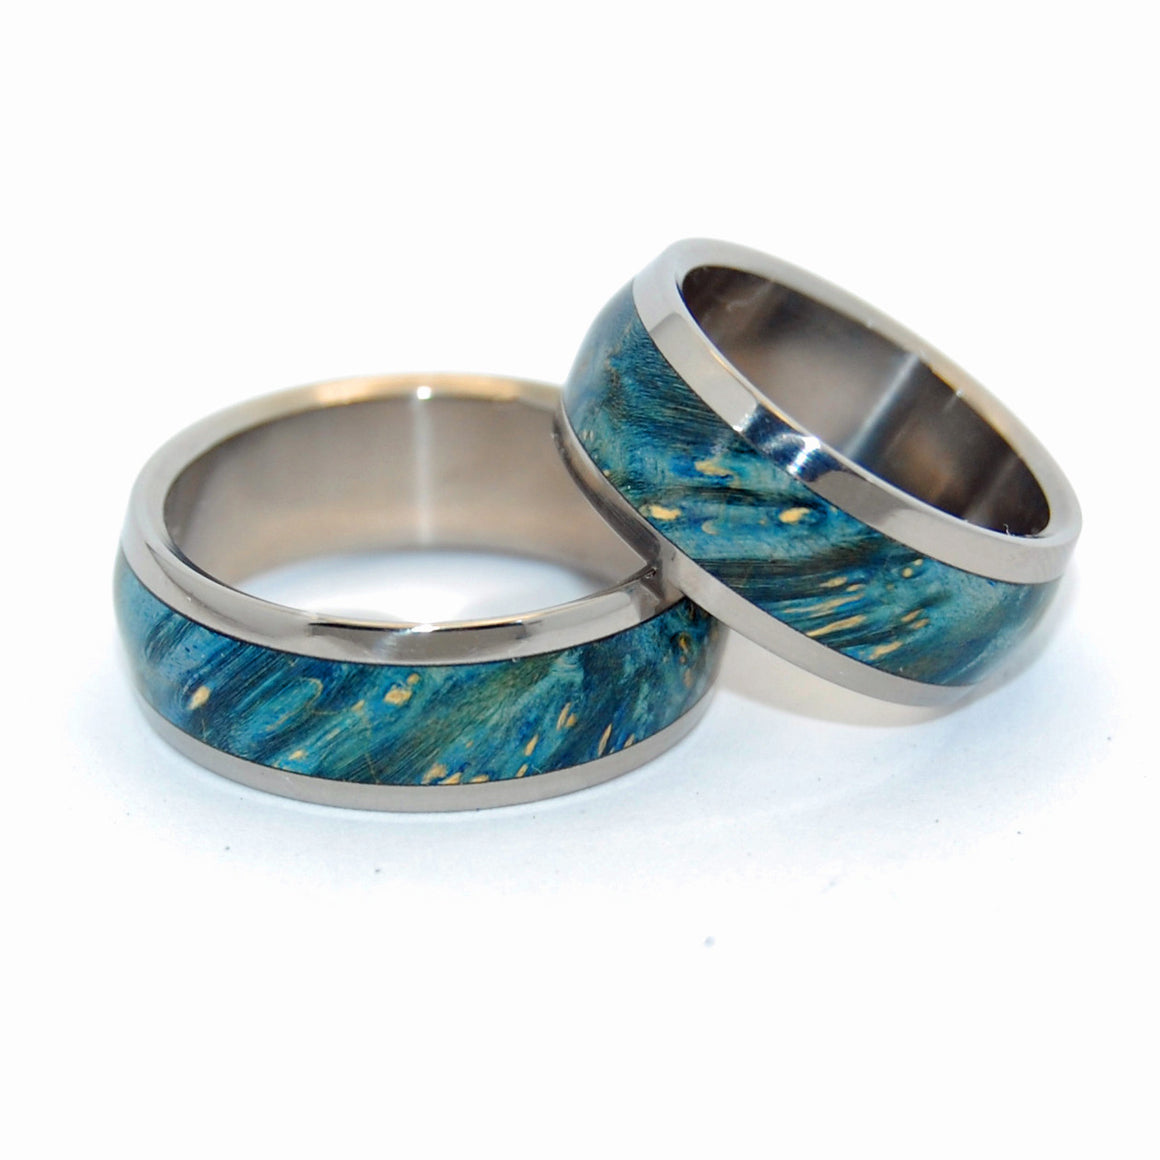 Te Amo | Handcrafted Titanium Wooden Wedding Rings